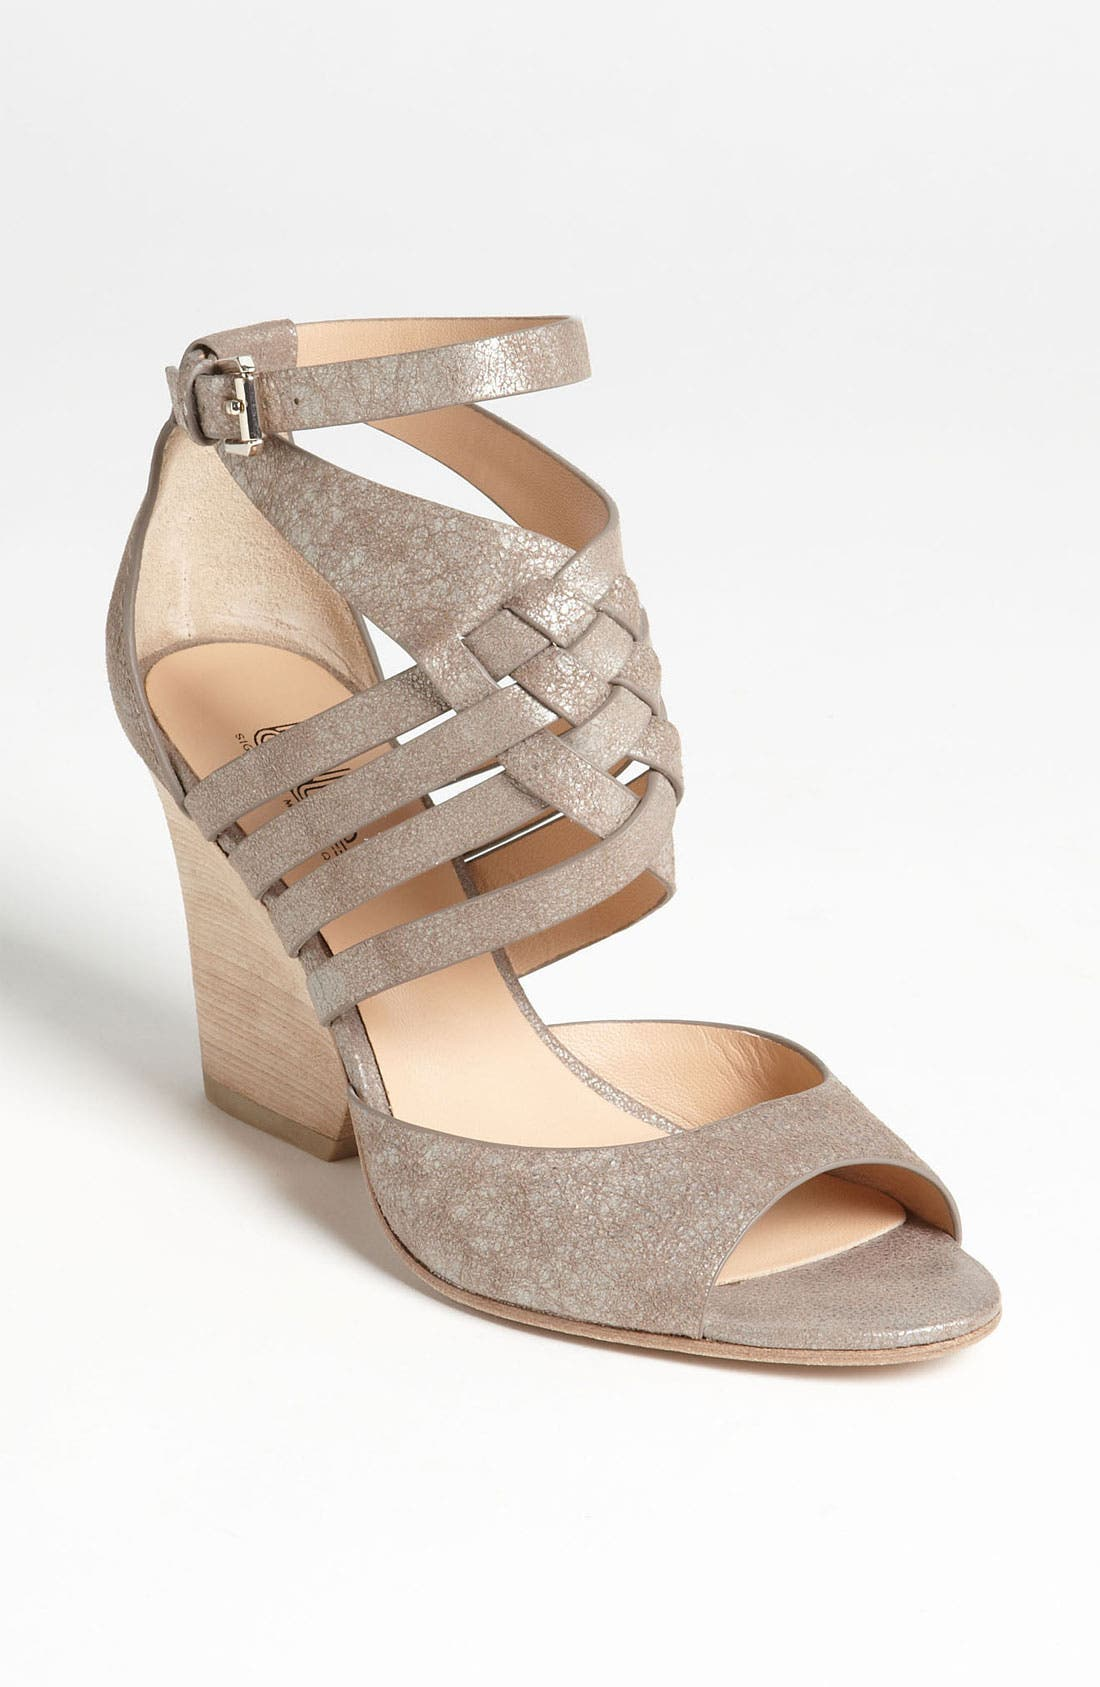 Alternate Image 1 Selected - Belle by Sigerson Morrison 'Daisy' Sandal